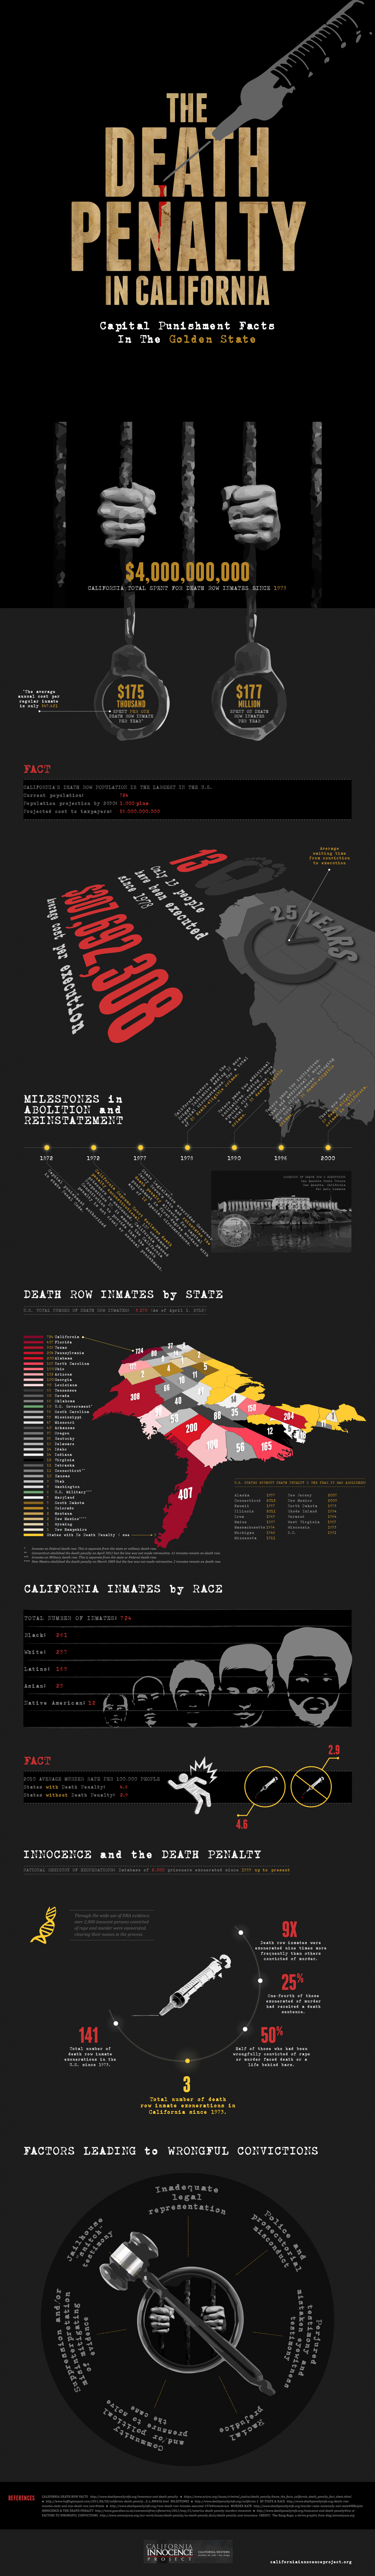 The Death Penalty in California Infographic